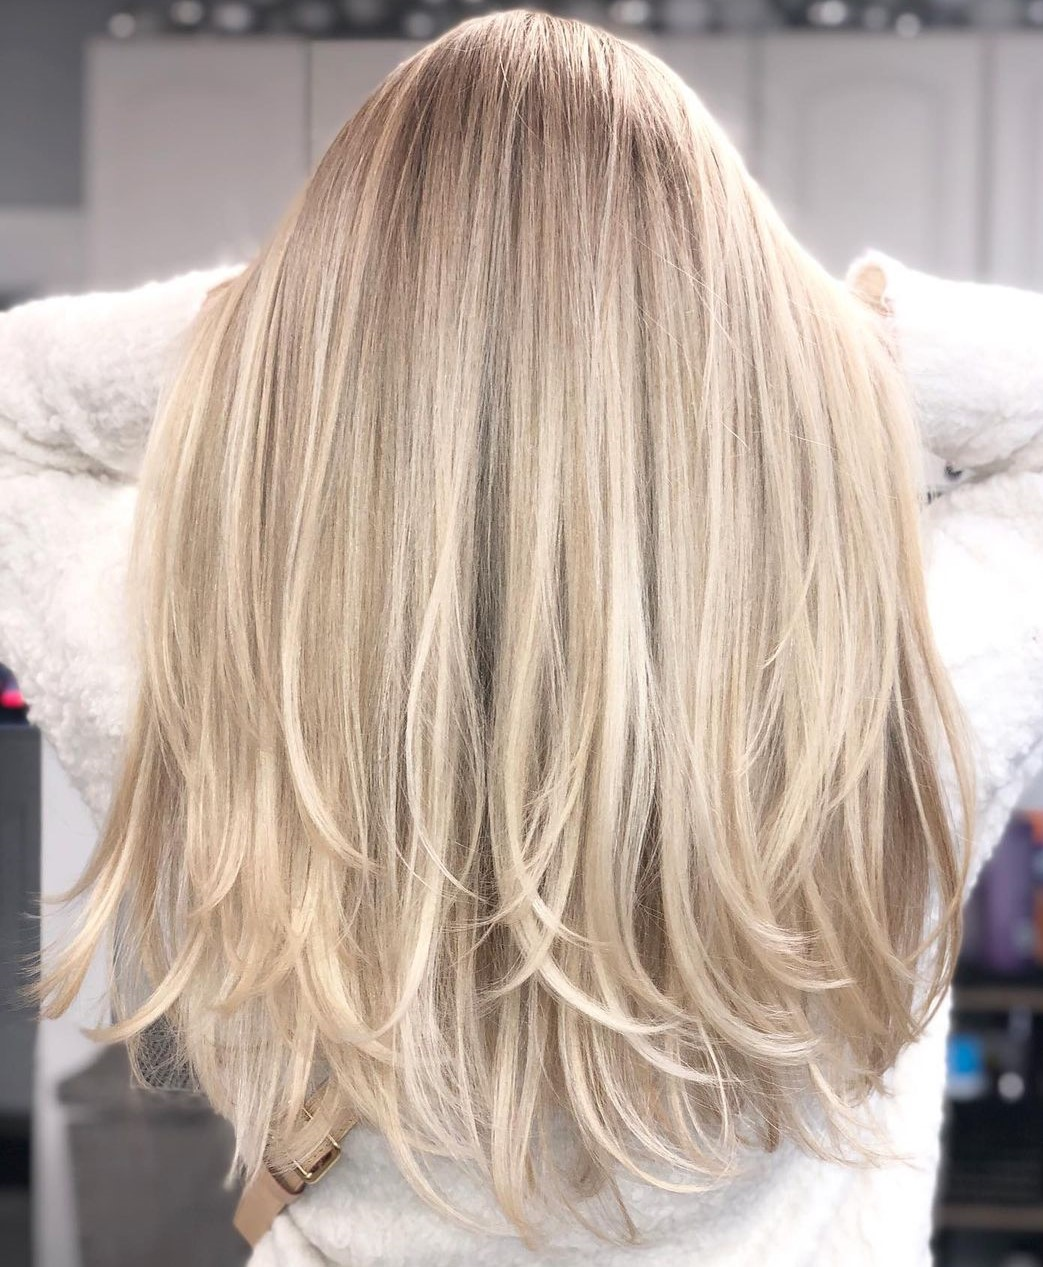 Long Haircut with Layered Ends